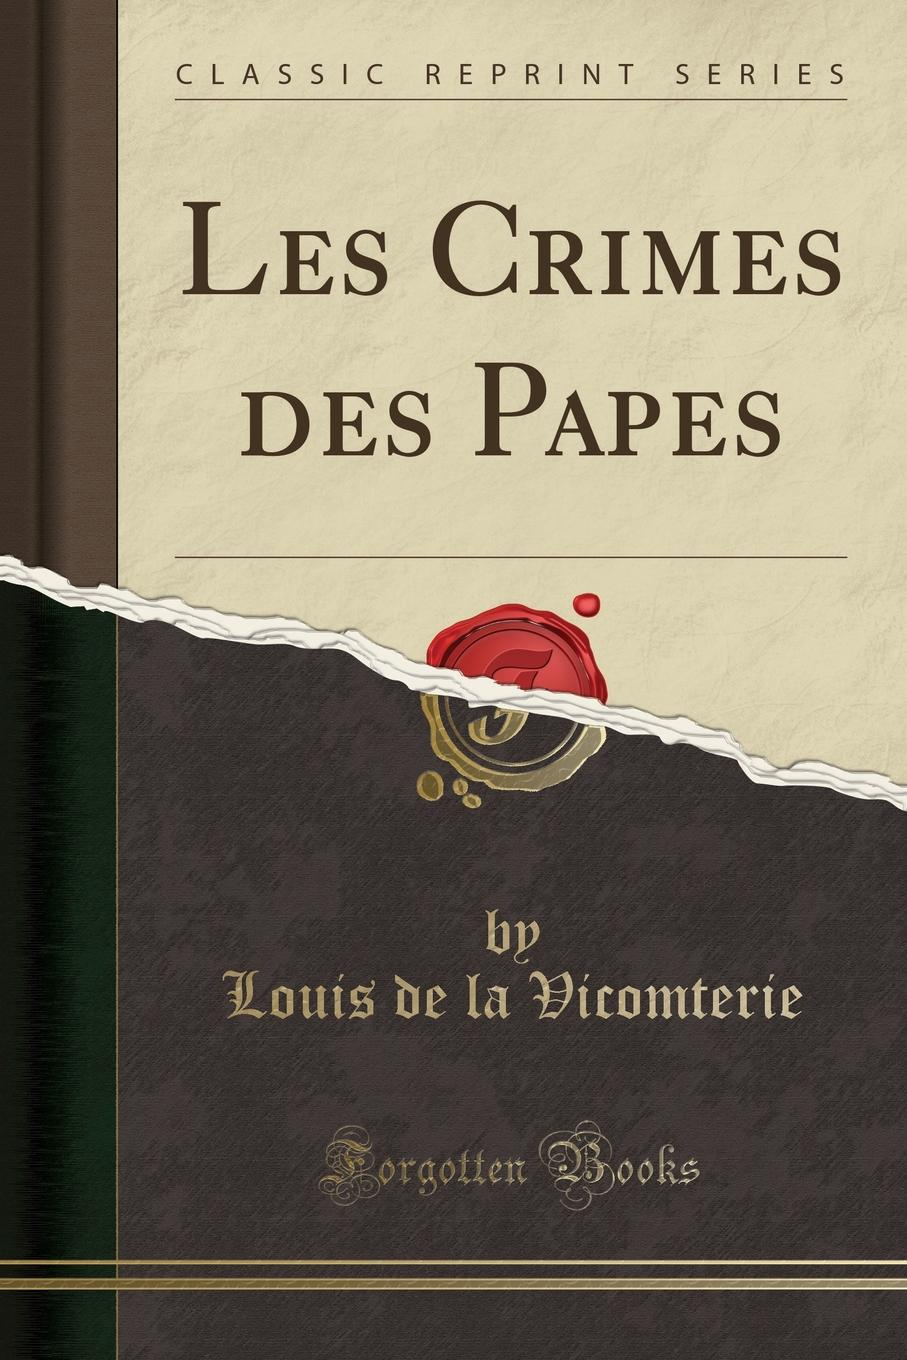 Louis de la Vicomterie. Les Crimes des Papes (Classic Reprint)